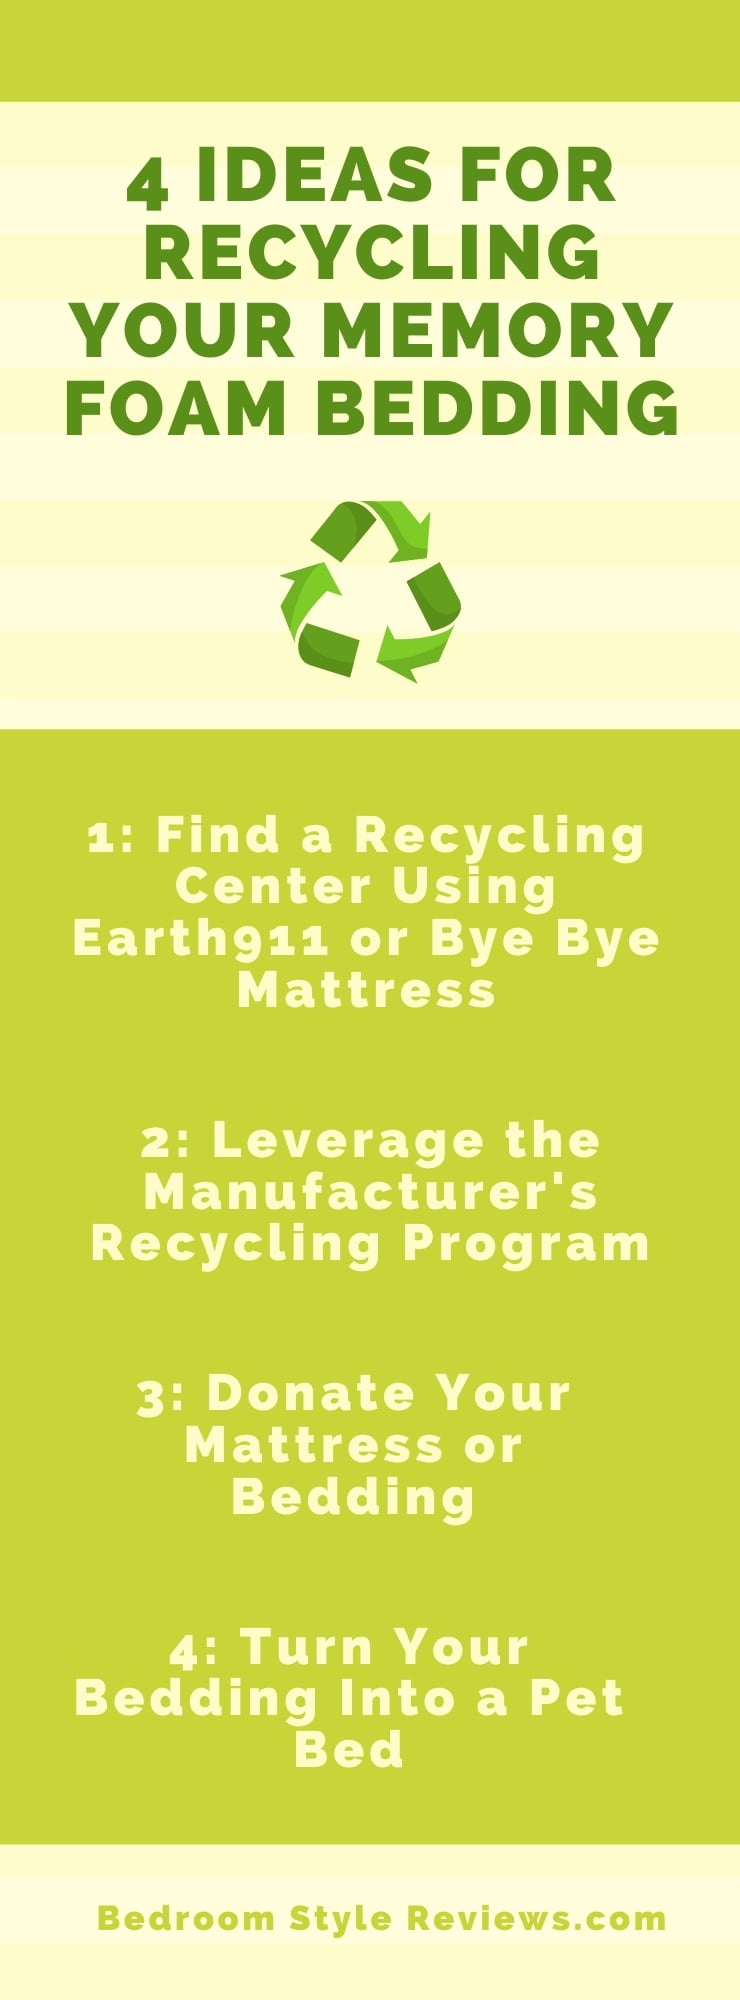 Custom Infographic Showing 4 Ways to Recycle or Reuse Memory Foam Bedding.